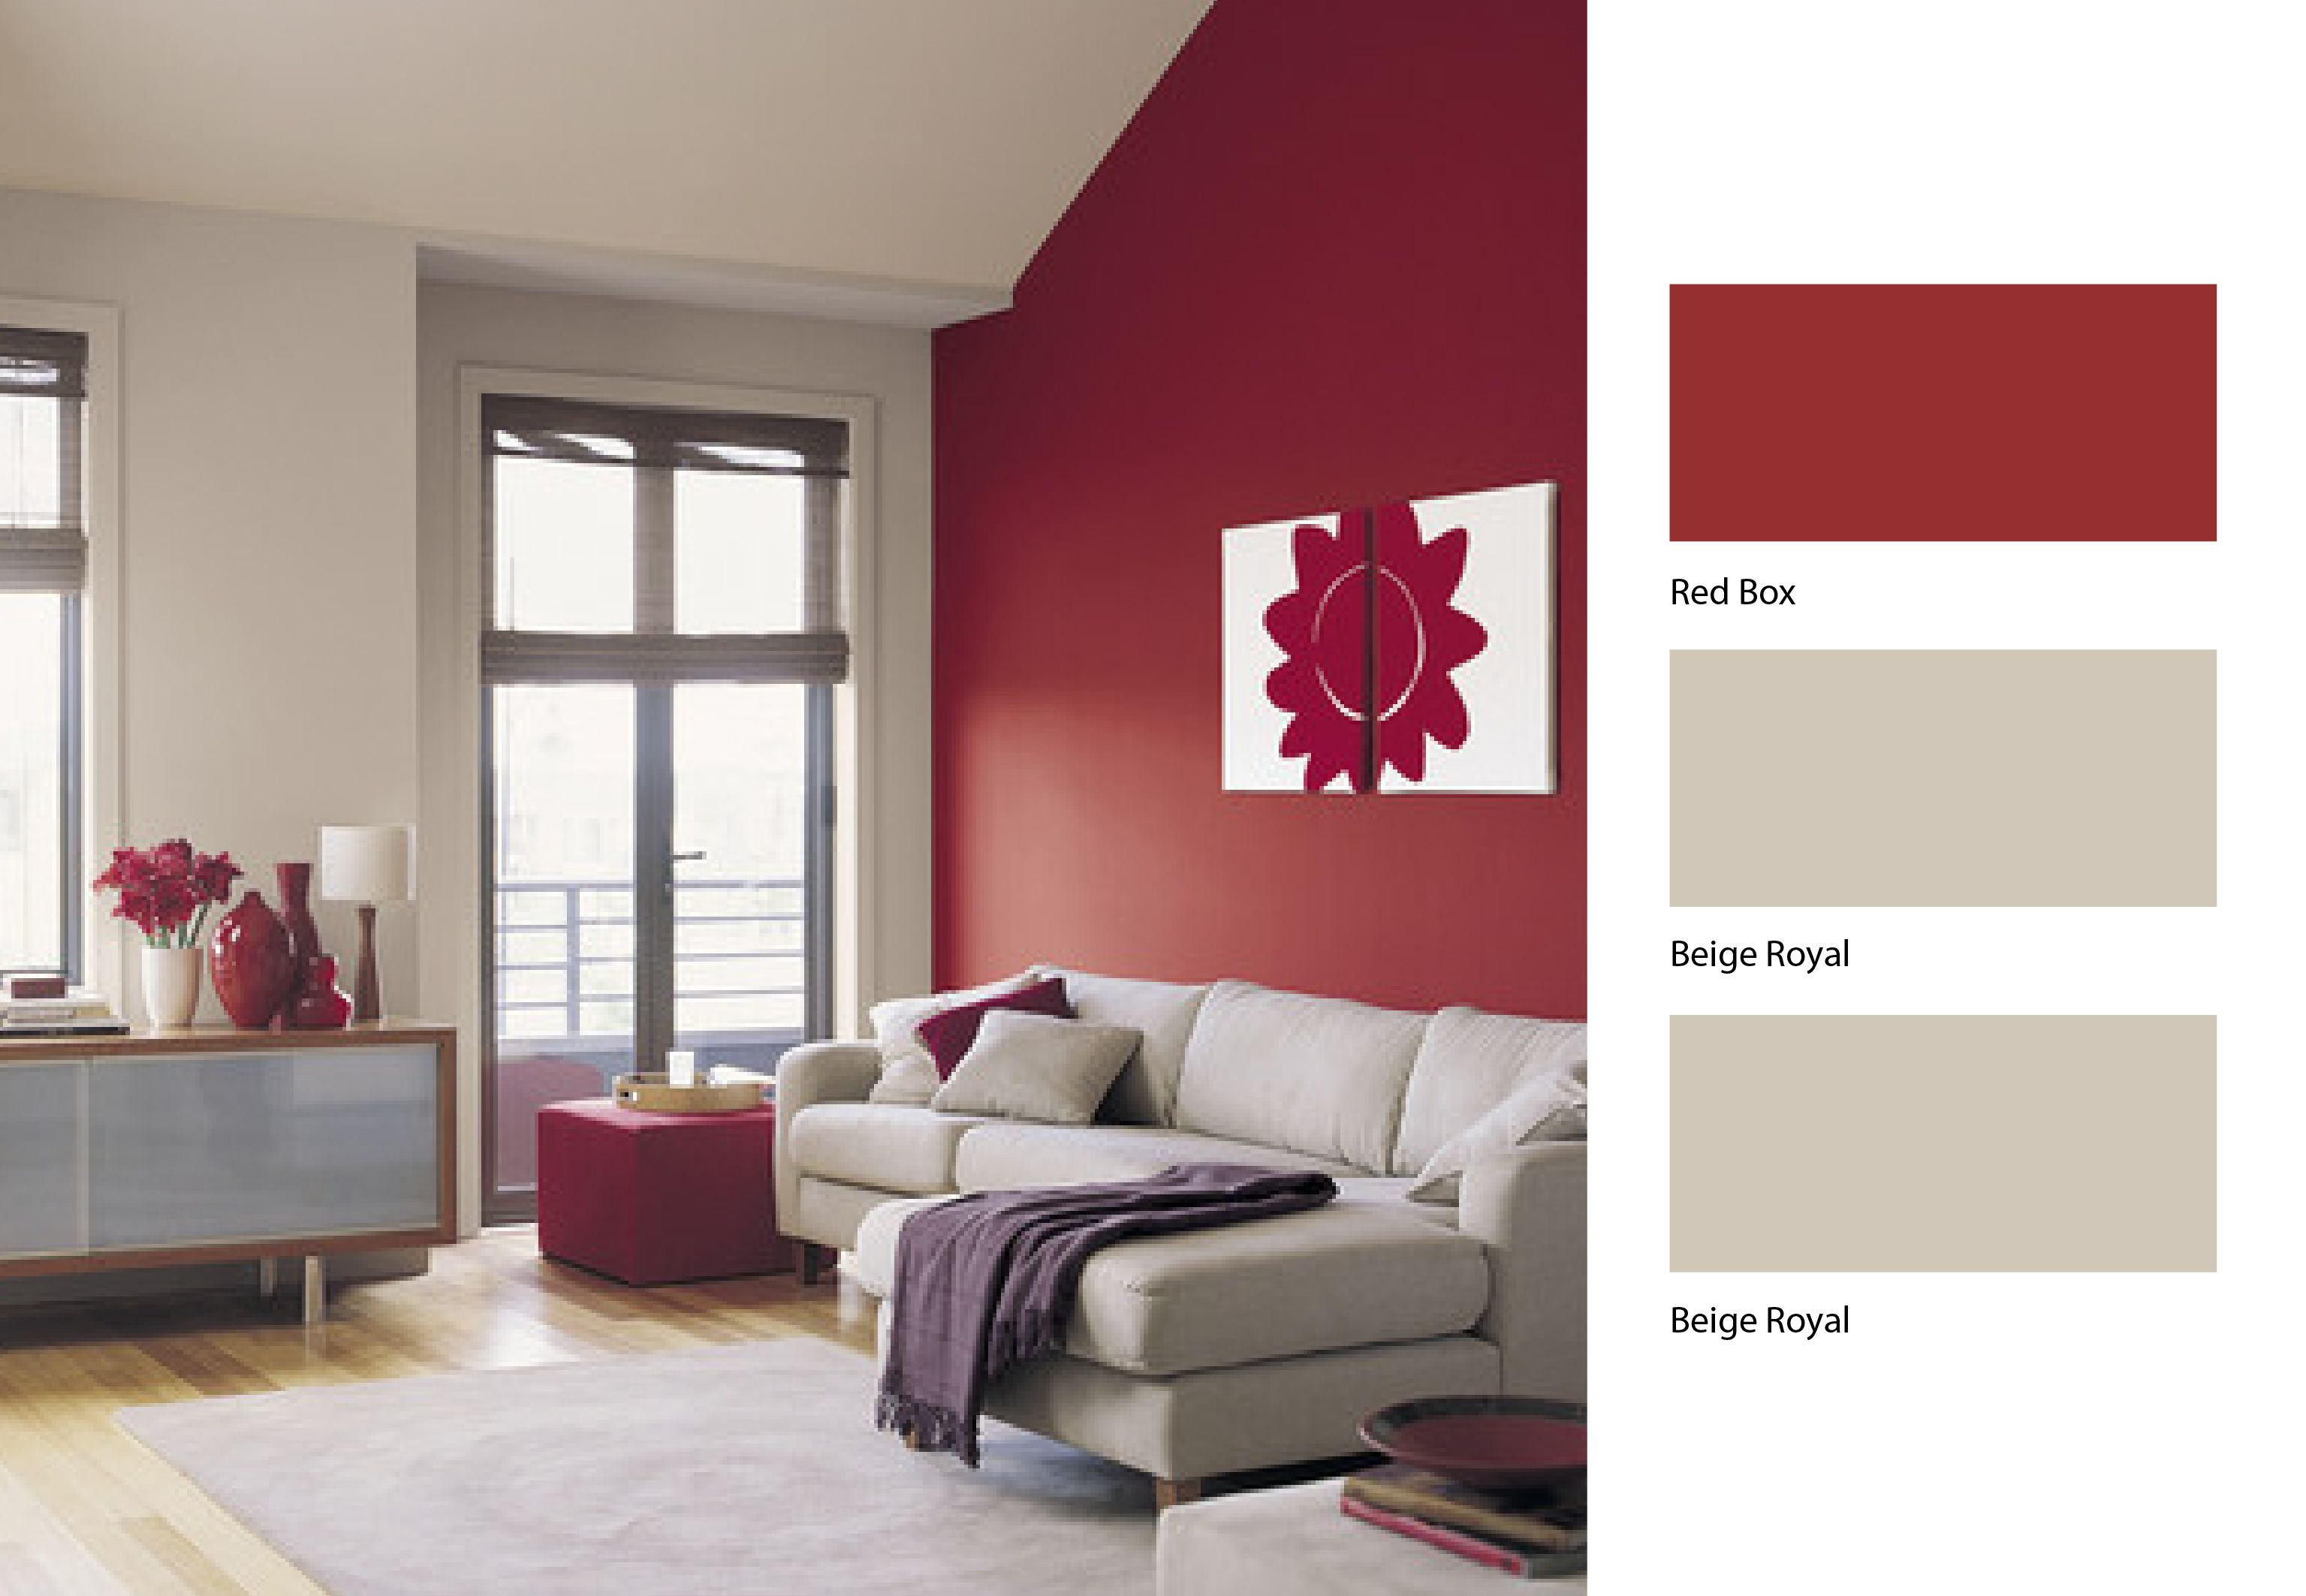 Give Your Living Room A Revamp With This Beige And Red